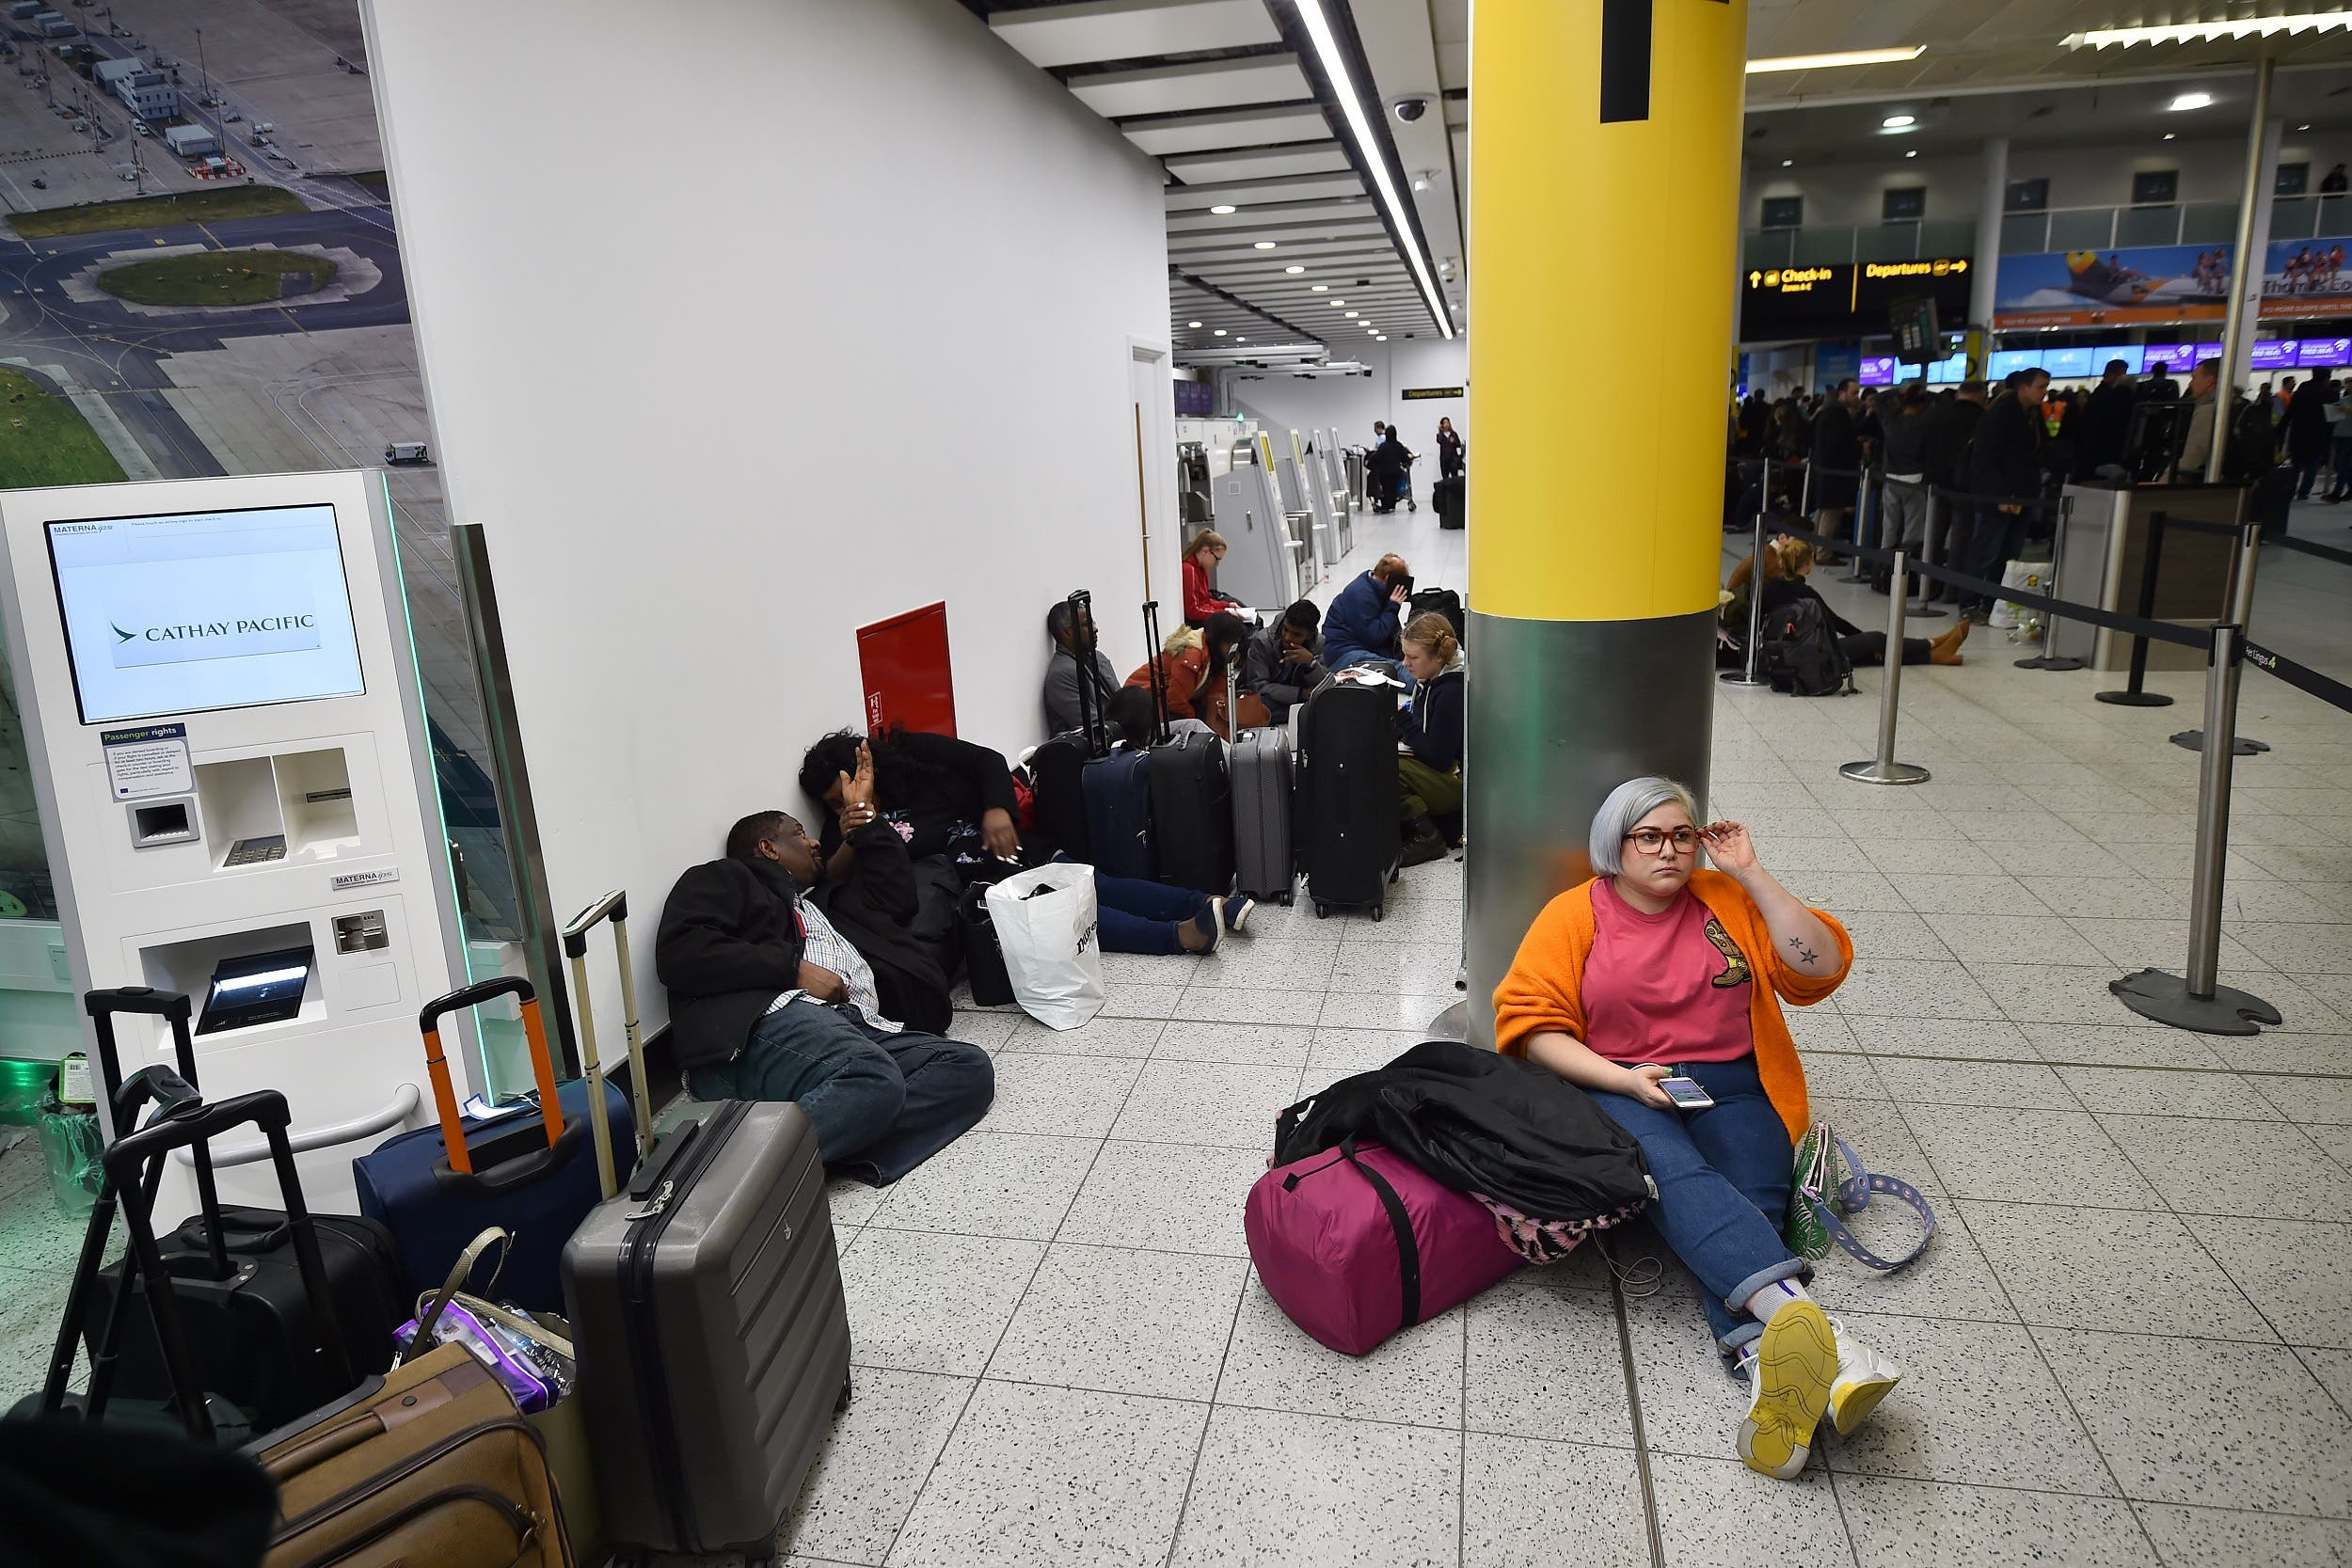 Passengers wait at London Gatwick Airport on December 20, 2018 after all flights were grounded. (AFP)